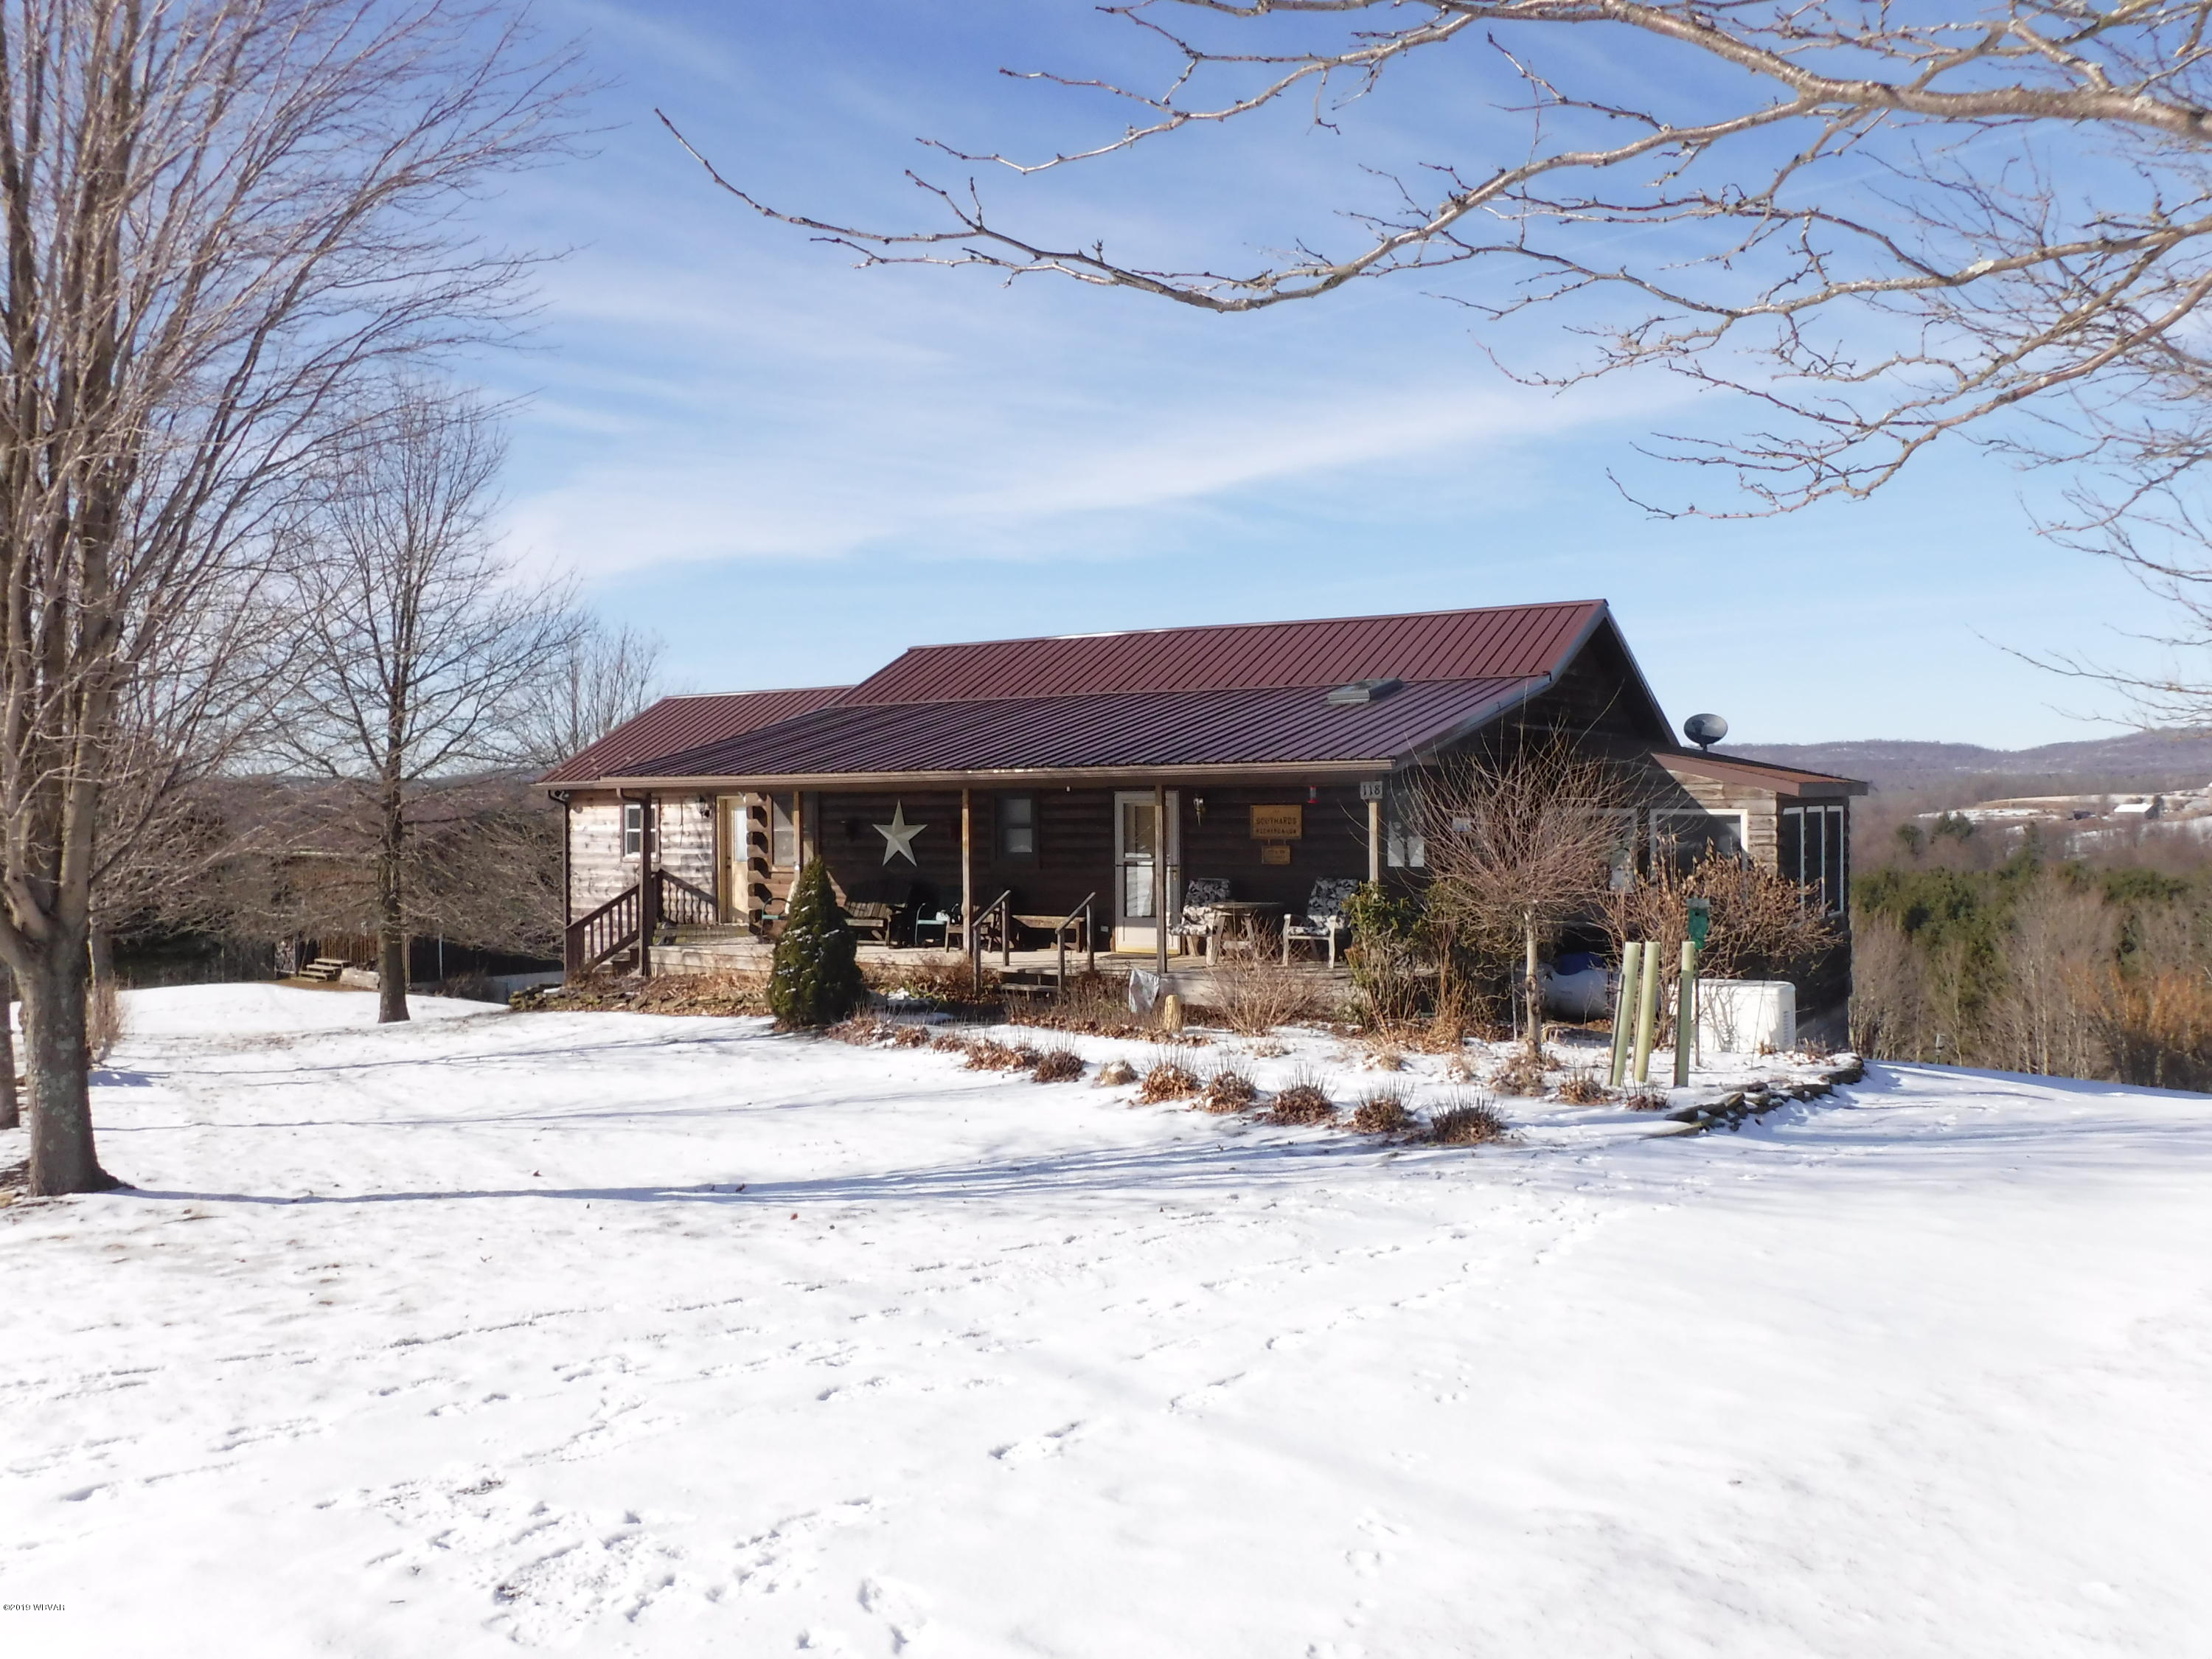 118 VALLEY VIEW LANE,Forksville,PA 18616,3 Bedrooms Bedrooms,2 BathroomsBathrooms,Residential,VALLEY VIEW,WB-86468